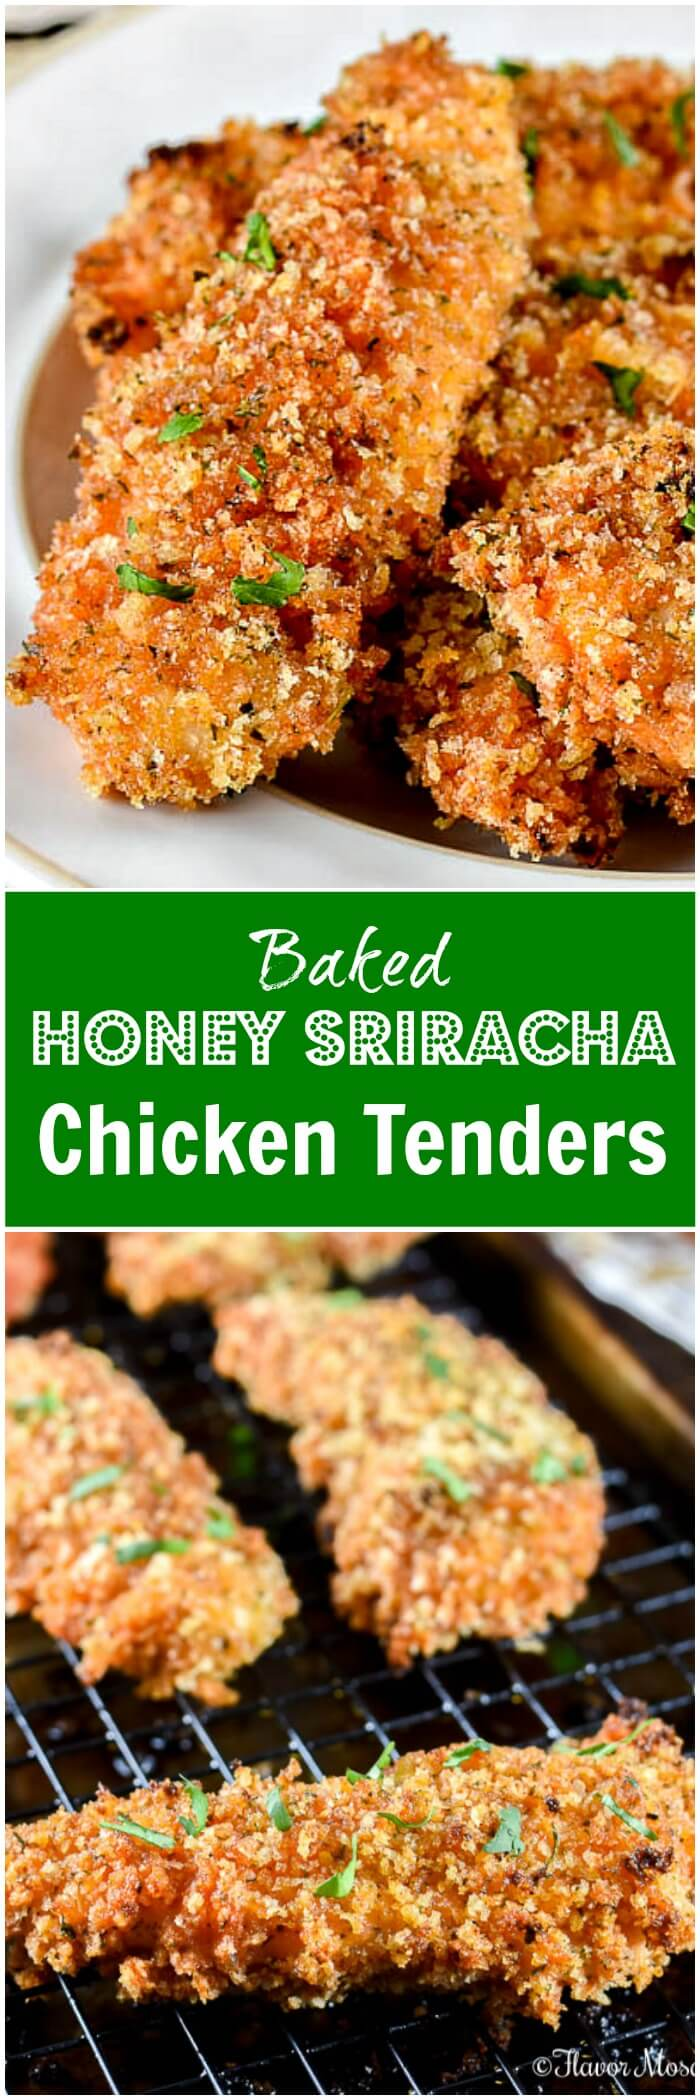 Baked Chicken Tenders with Honey Sriracha Recipe Image Long Pin